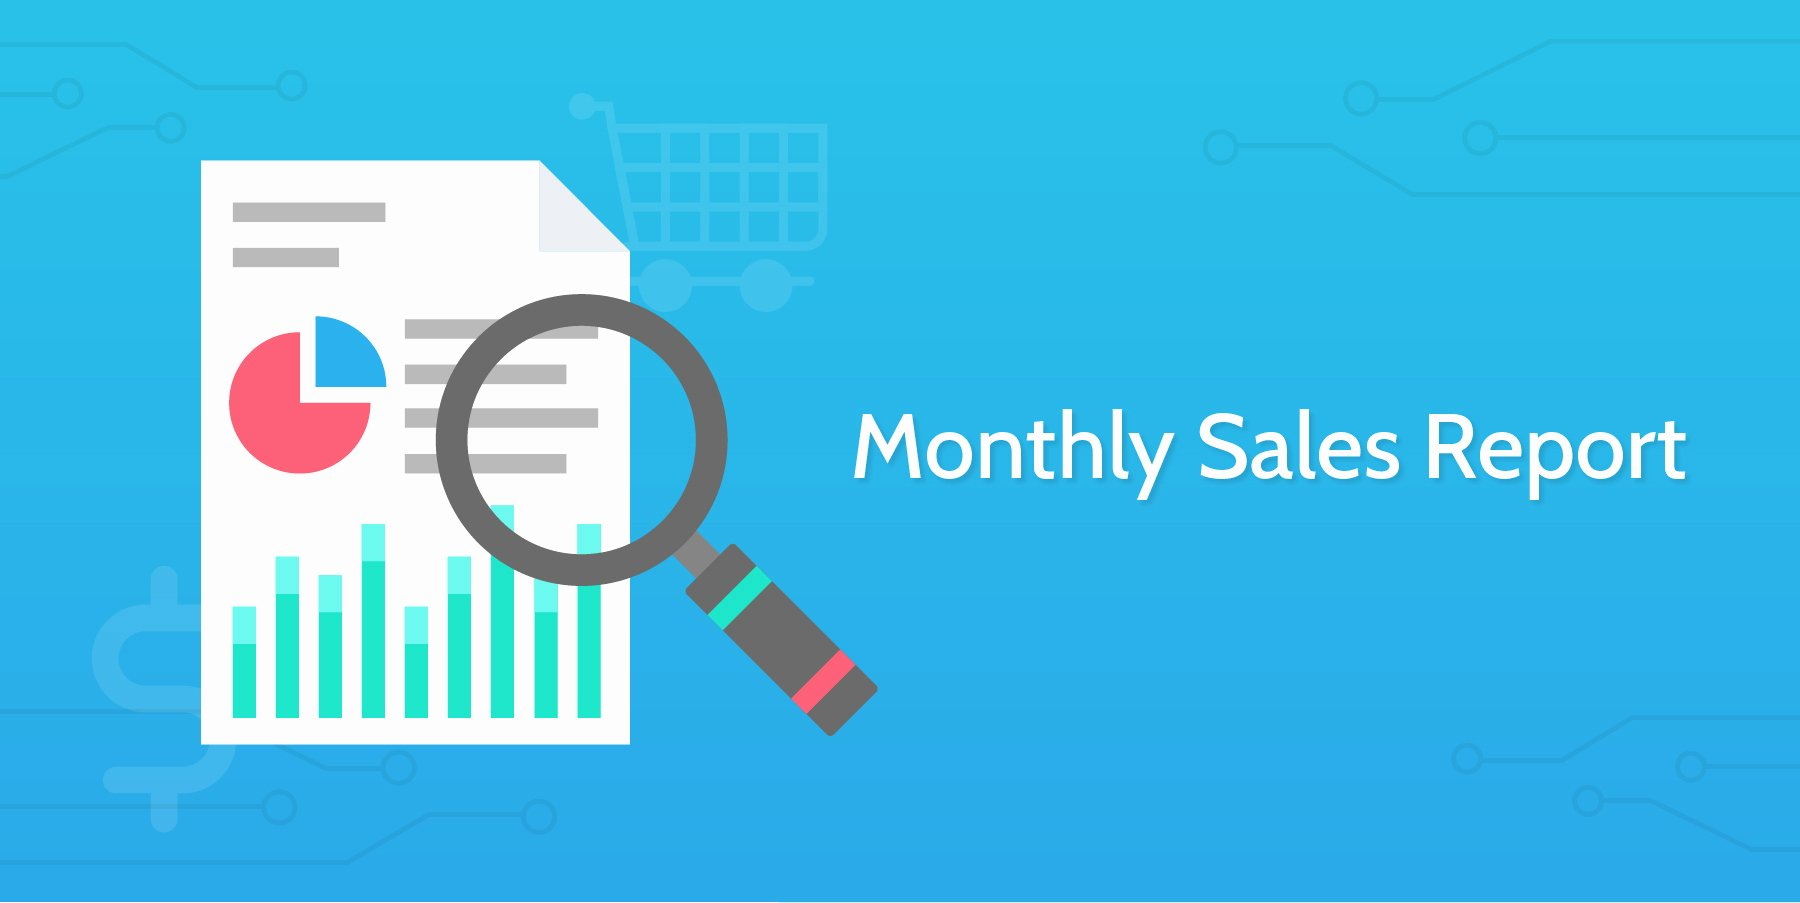 Monthly Sales Report Template Luxury Monthly Sales Report